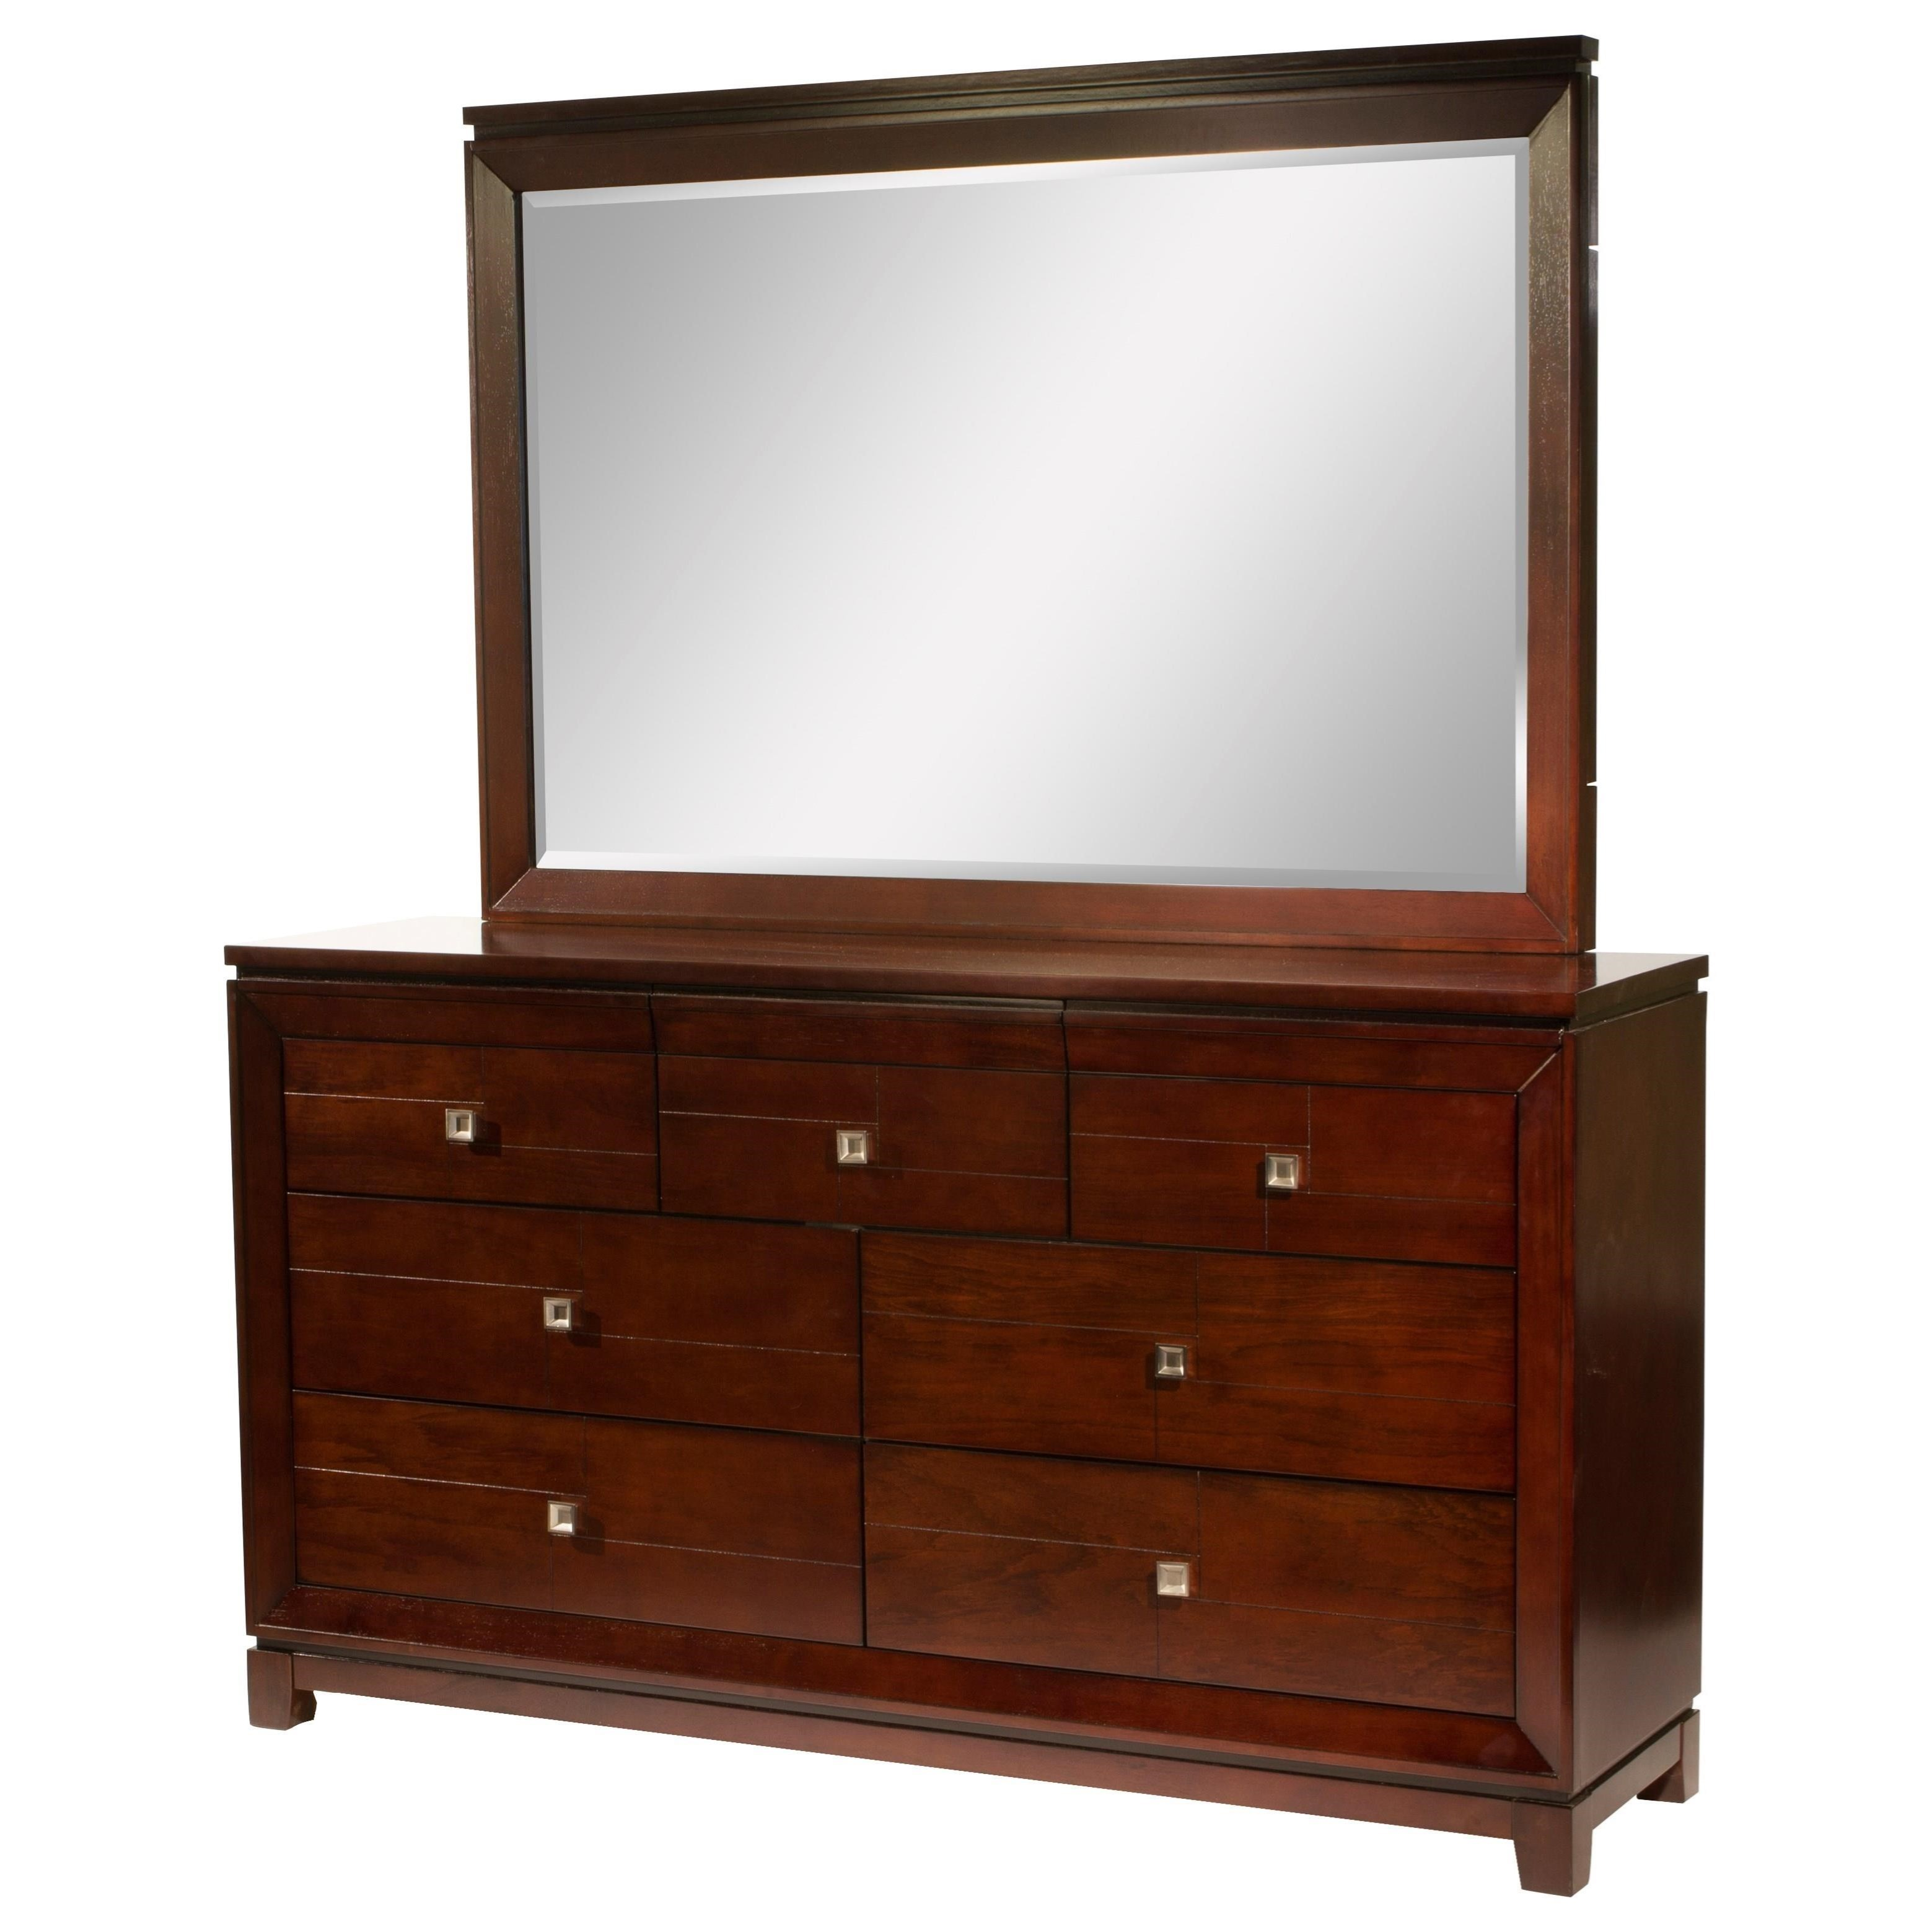 London 7-Drawer Dresser & Mirror Set by Elements International at Wilcox Furniture